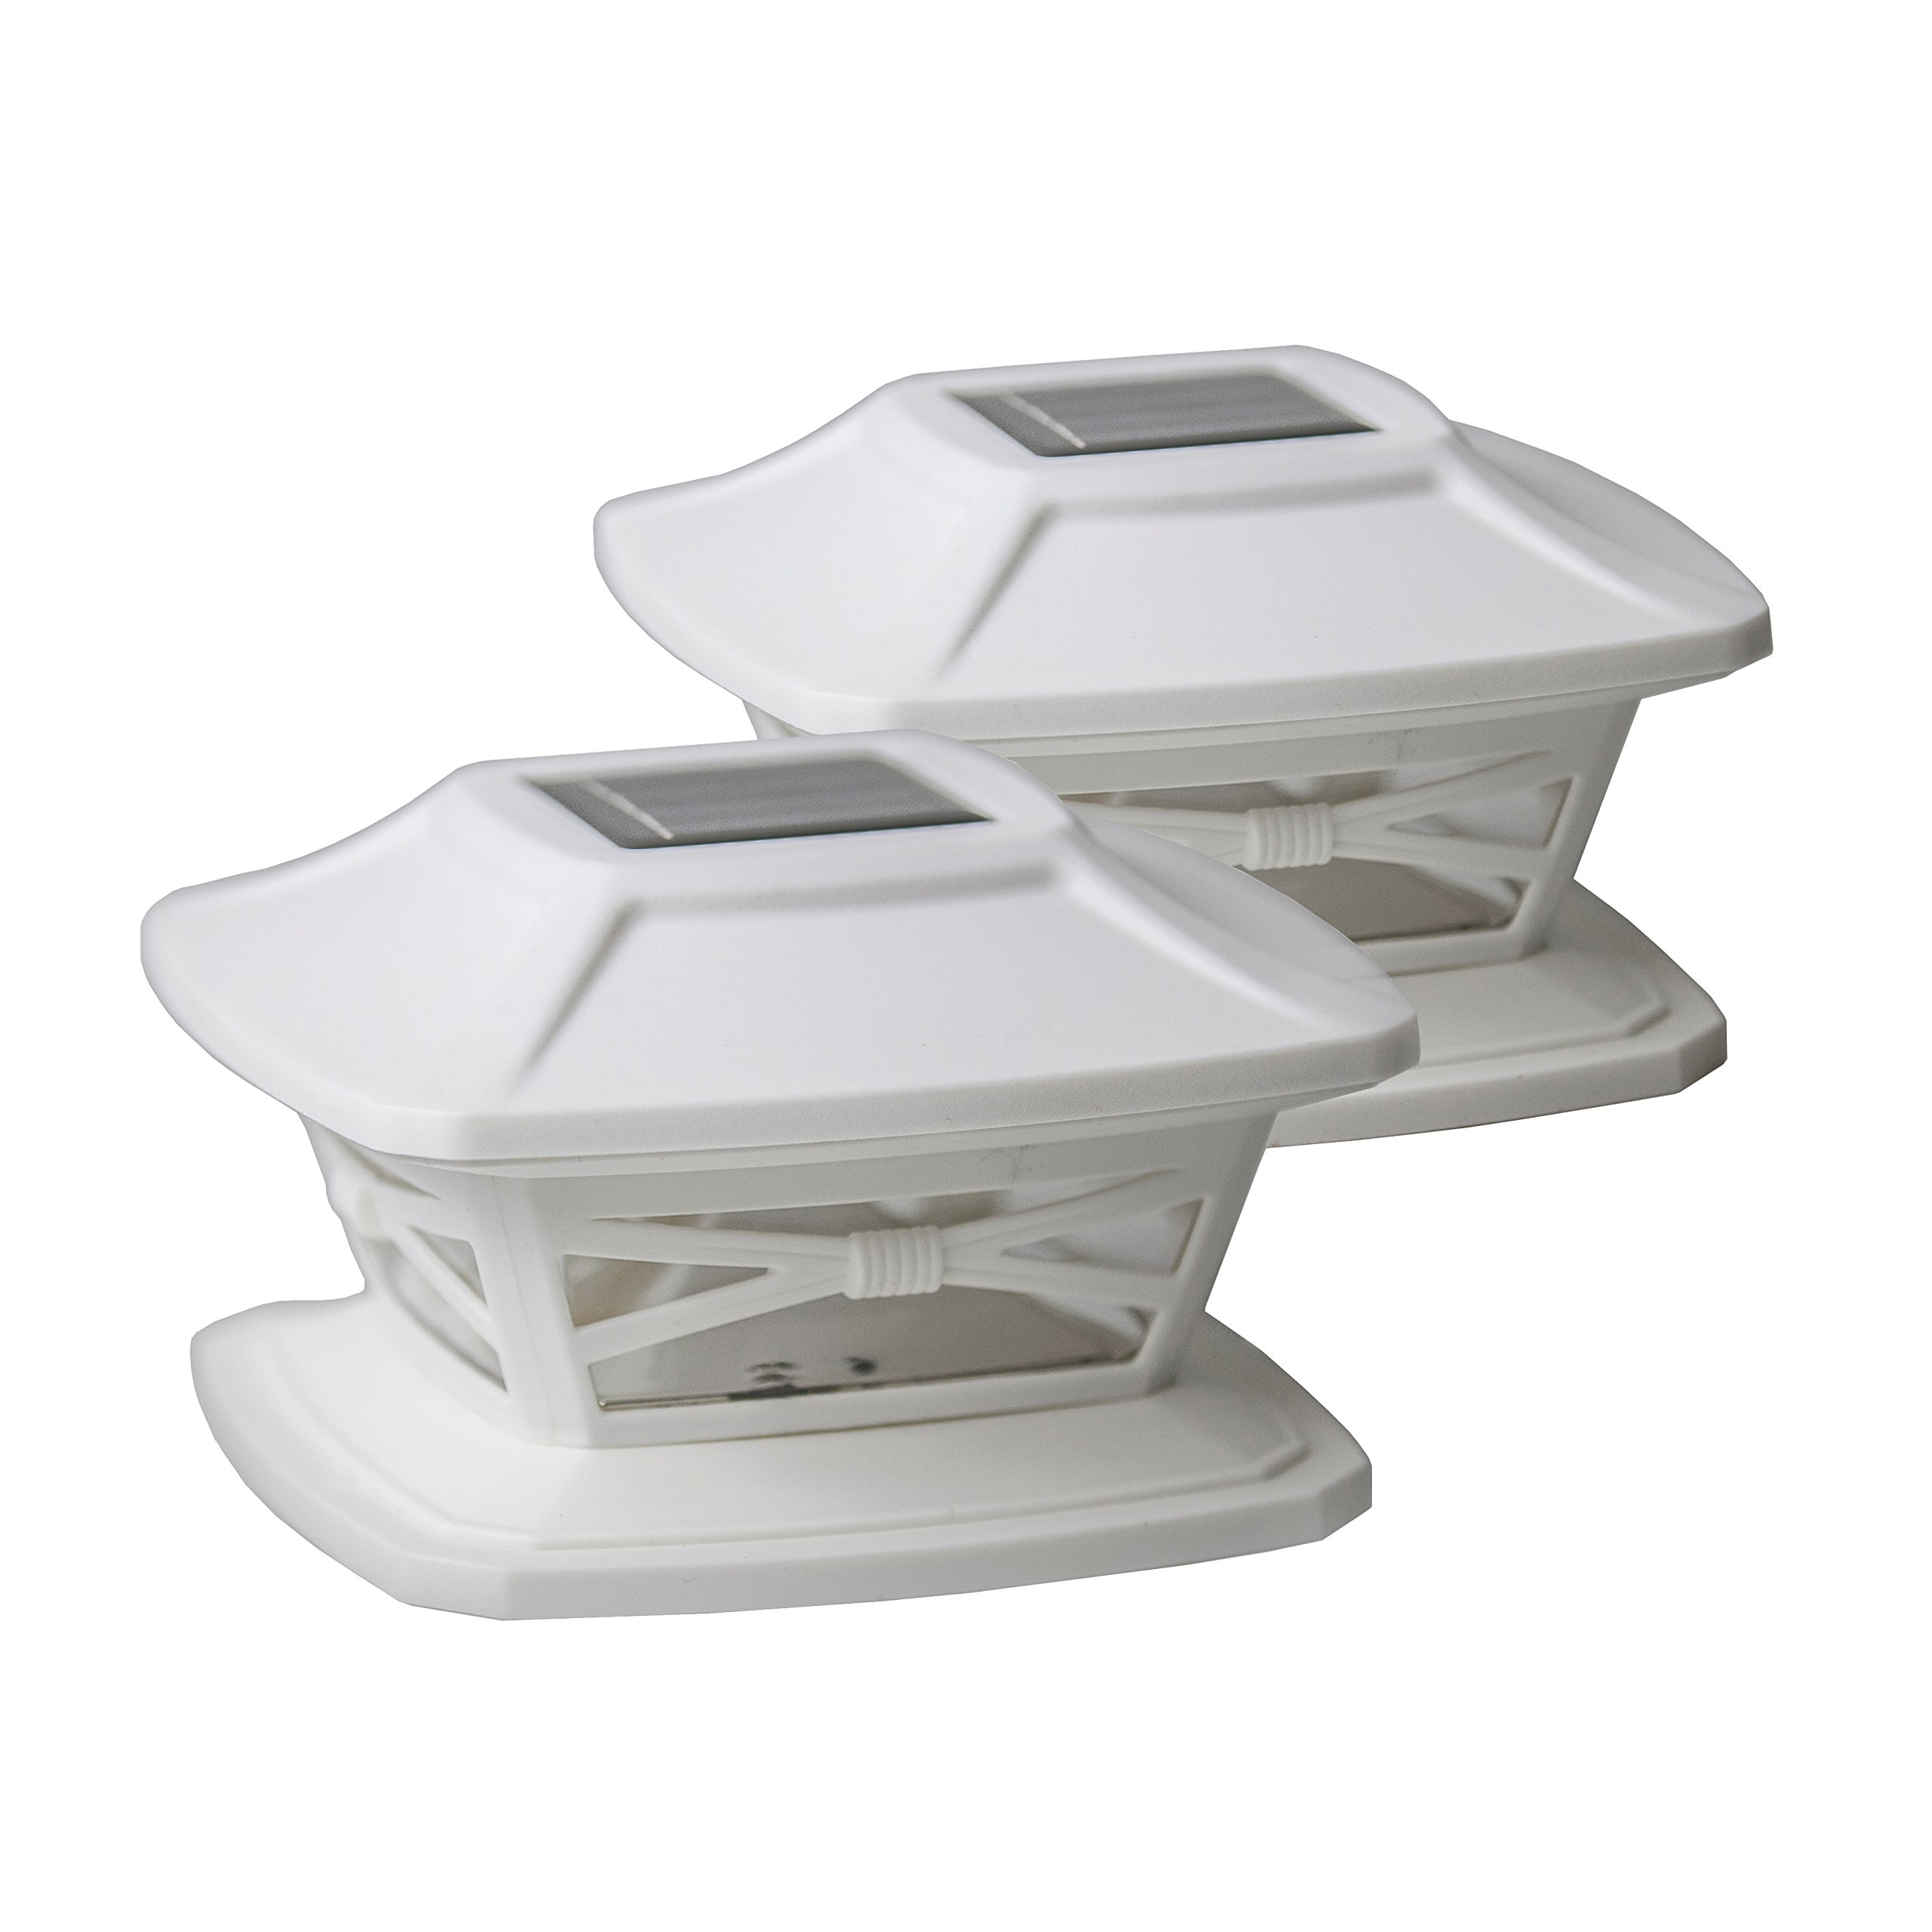 Cheap 6x6 Post Caps Lowes Find 6x6 Post Caps Lowes Deals On Line At Alibaba Com